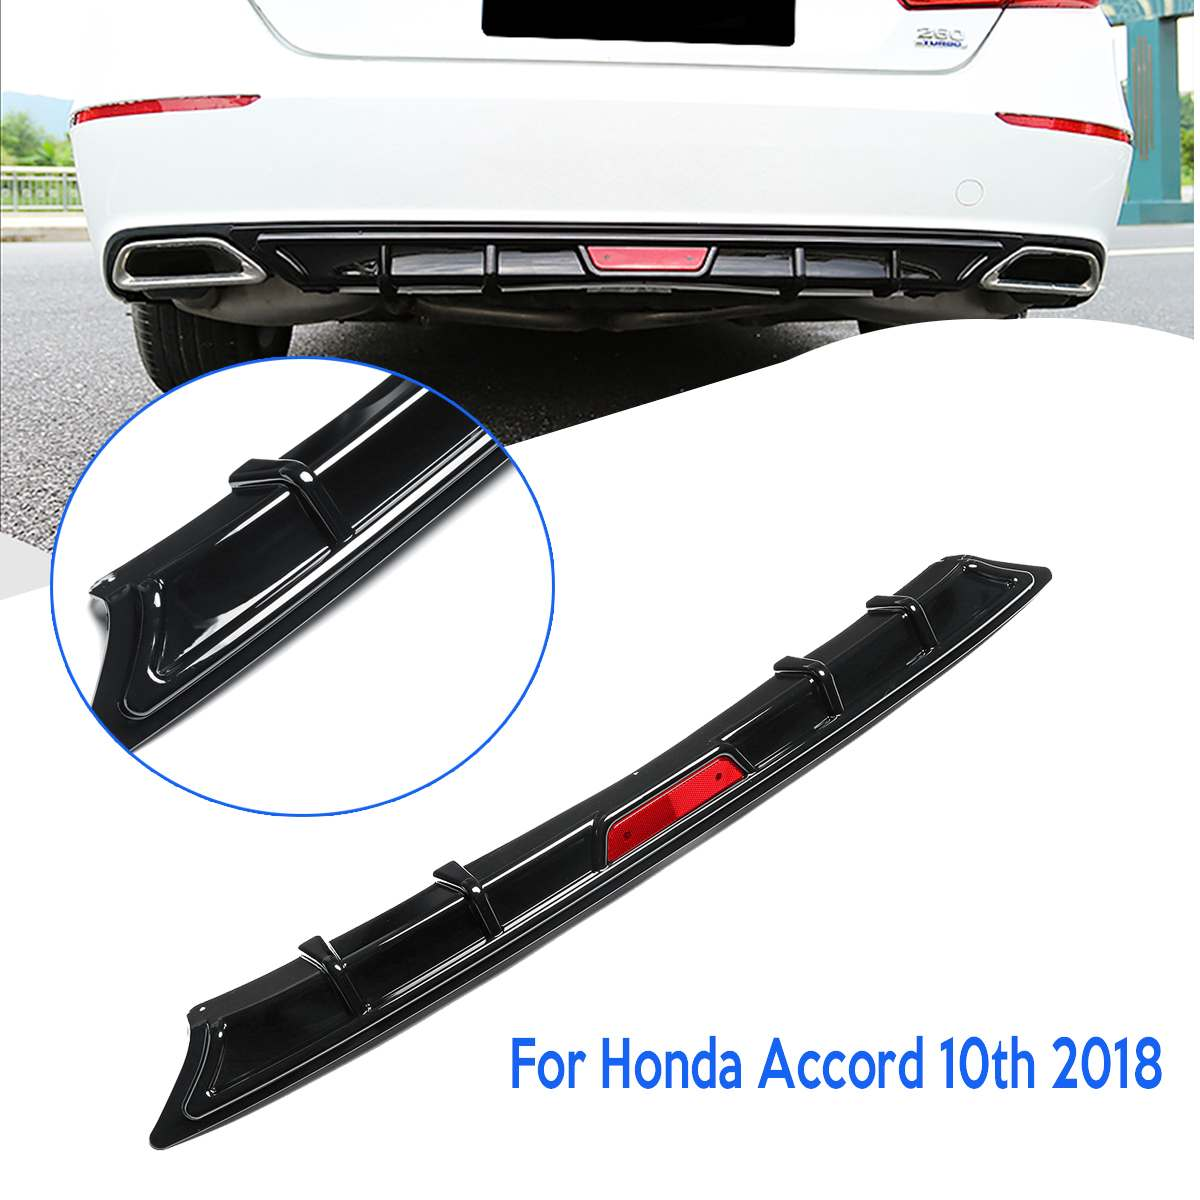 NEW Rear Bumper Lip Diffuser Garnish Body Kit for Honda for Accord 10th 2018 Auto Exterior Part Black Gloss Bumper Skirt Spoiler